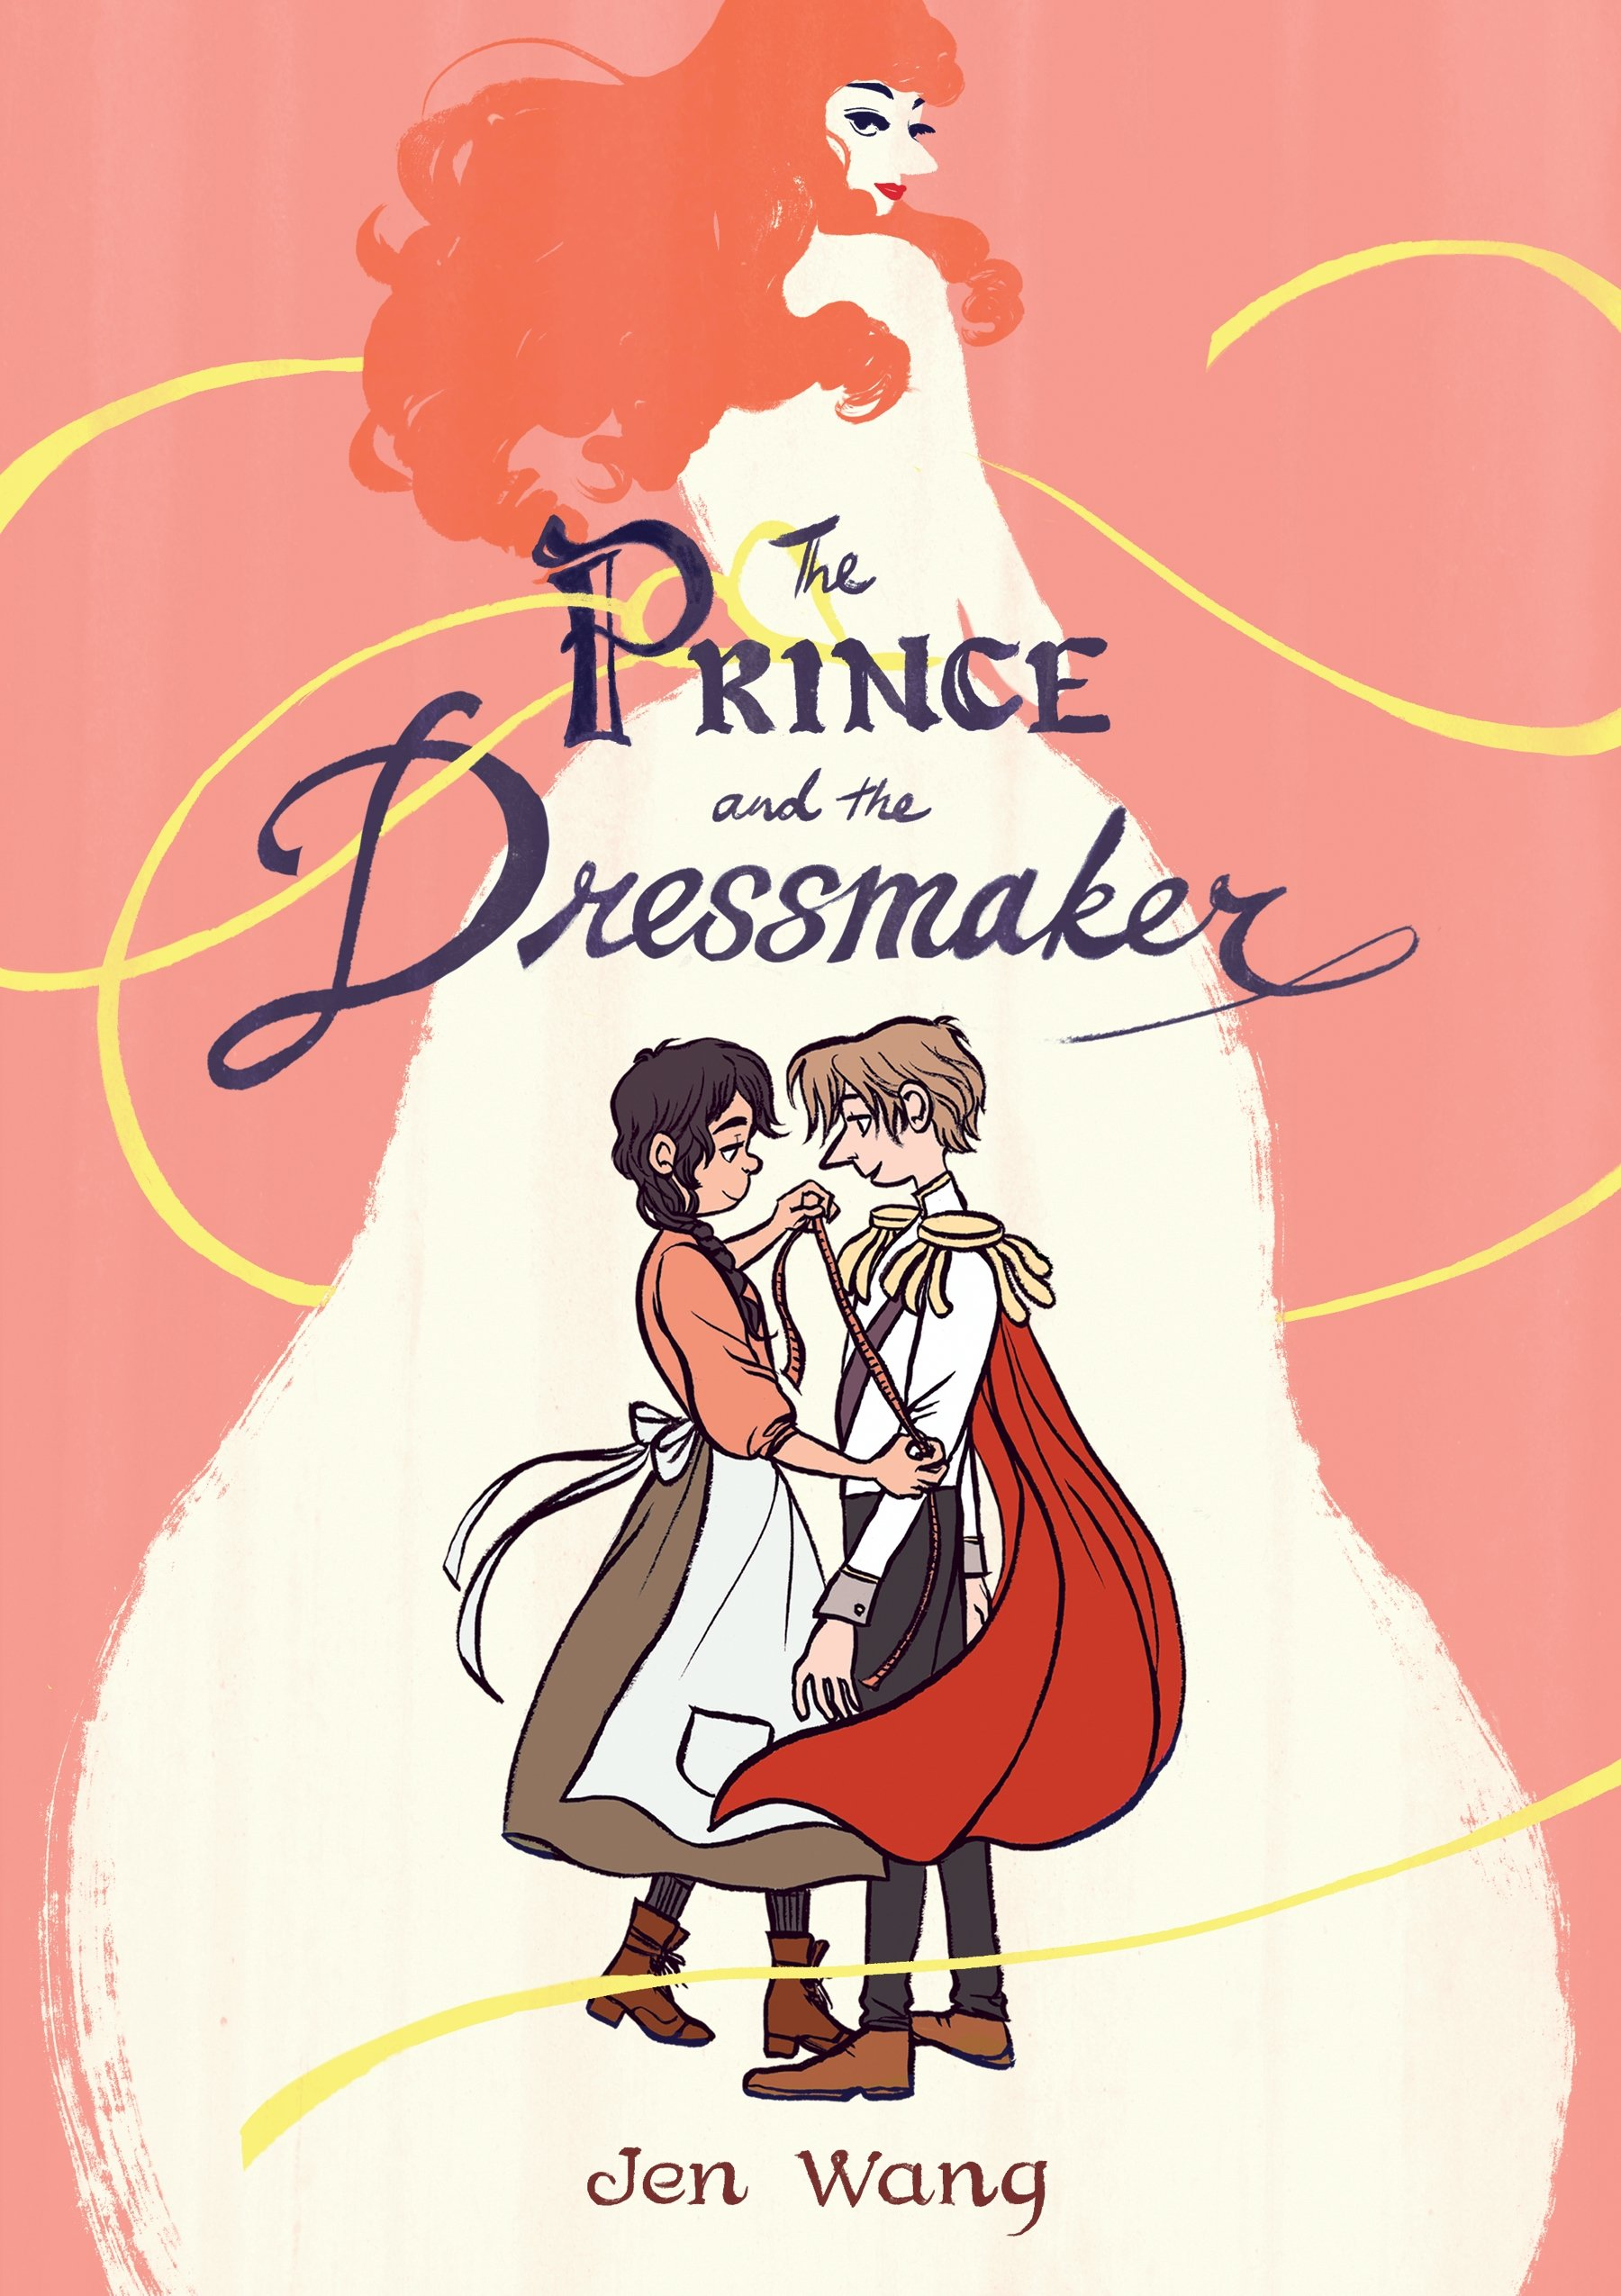 The cover of the Prince and the Dressmaker. It shows a girl with a measuring tape and a Prince in a white jacket with red cape. In the background we see a figure with bright pink hair.